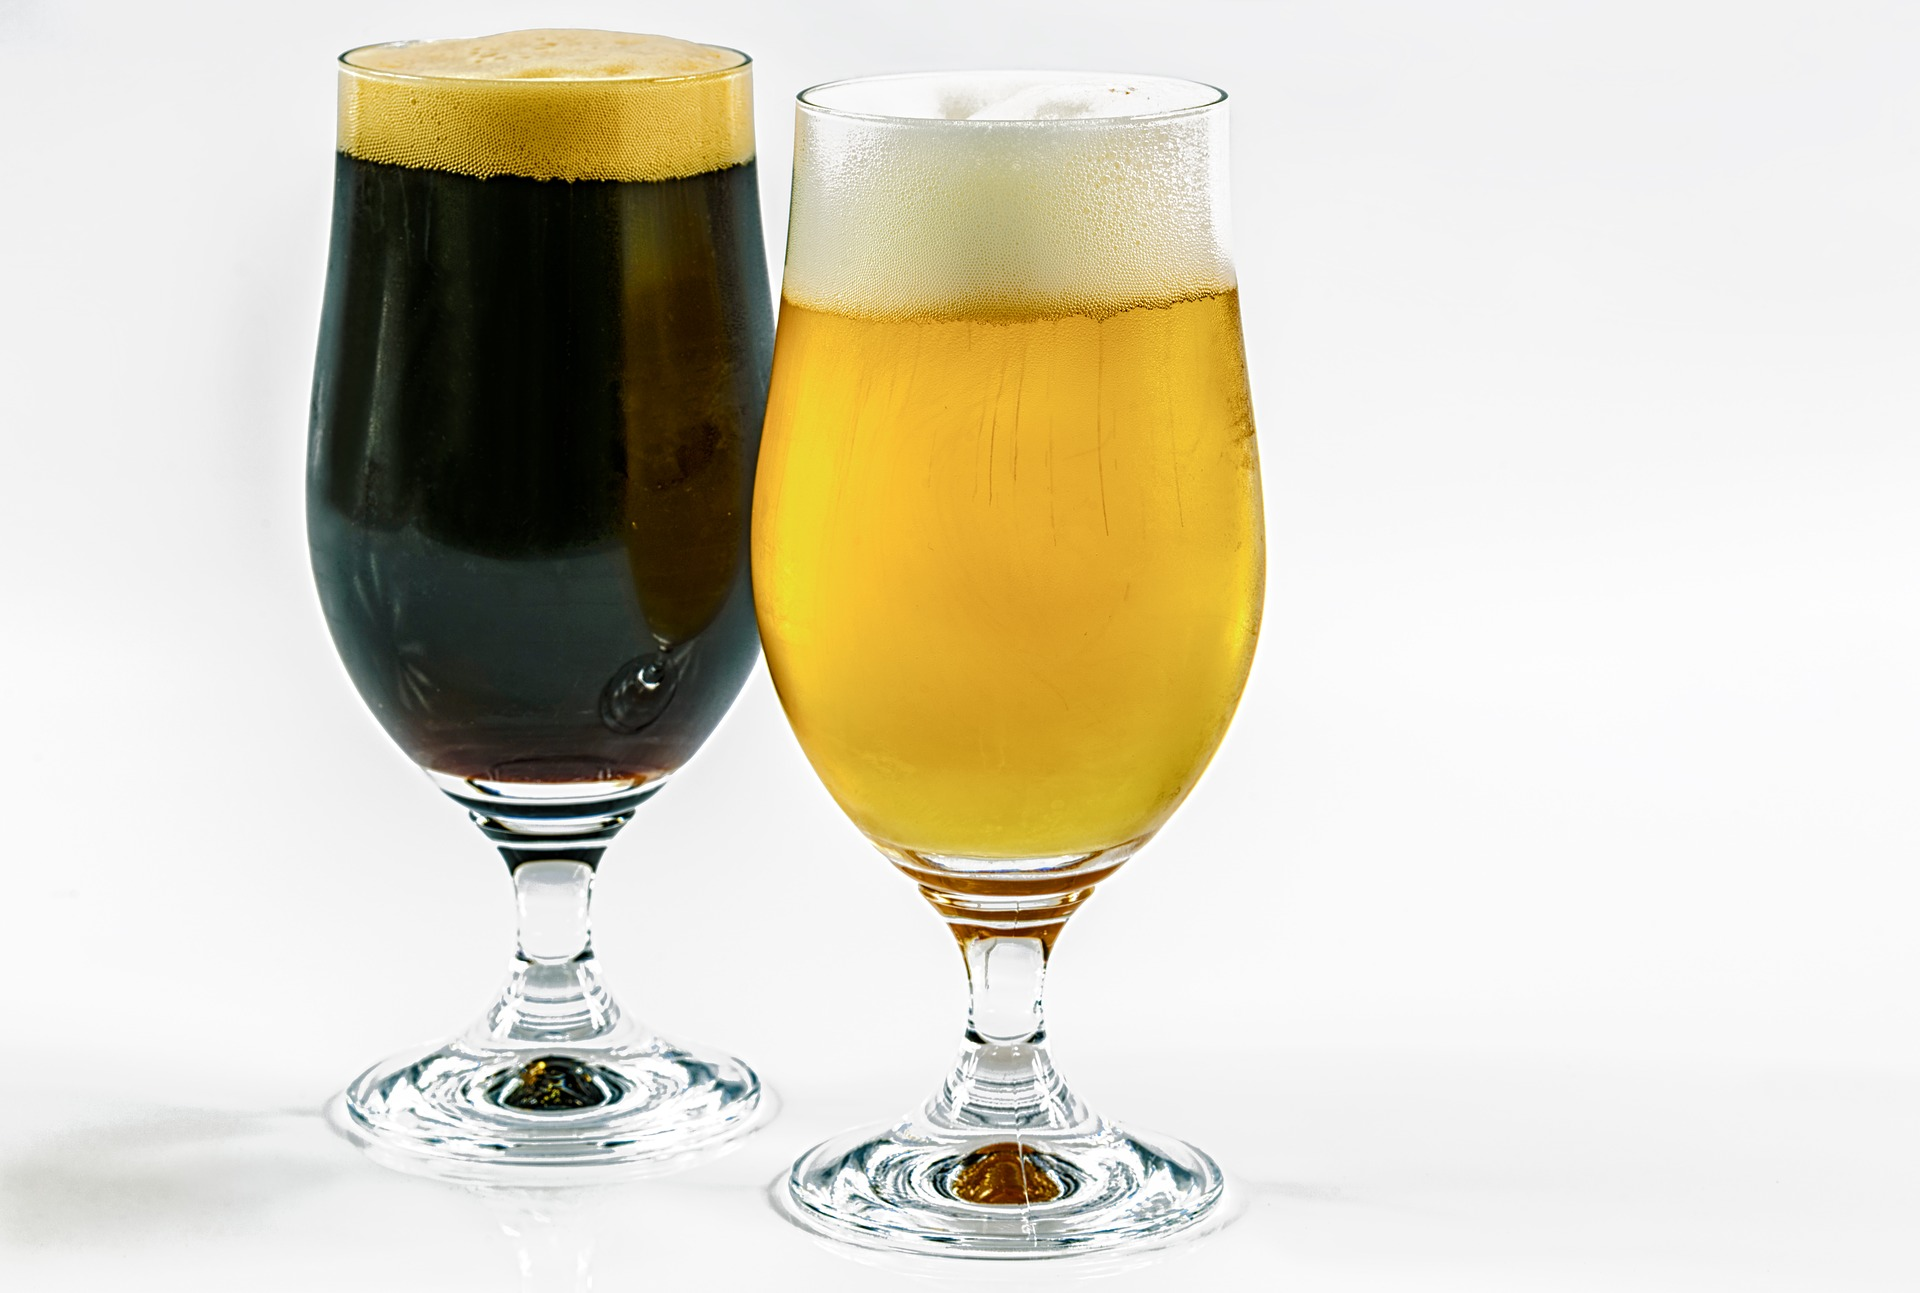 A dark beer and a light beer, in stemmed glasses